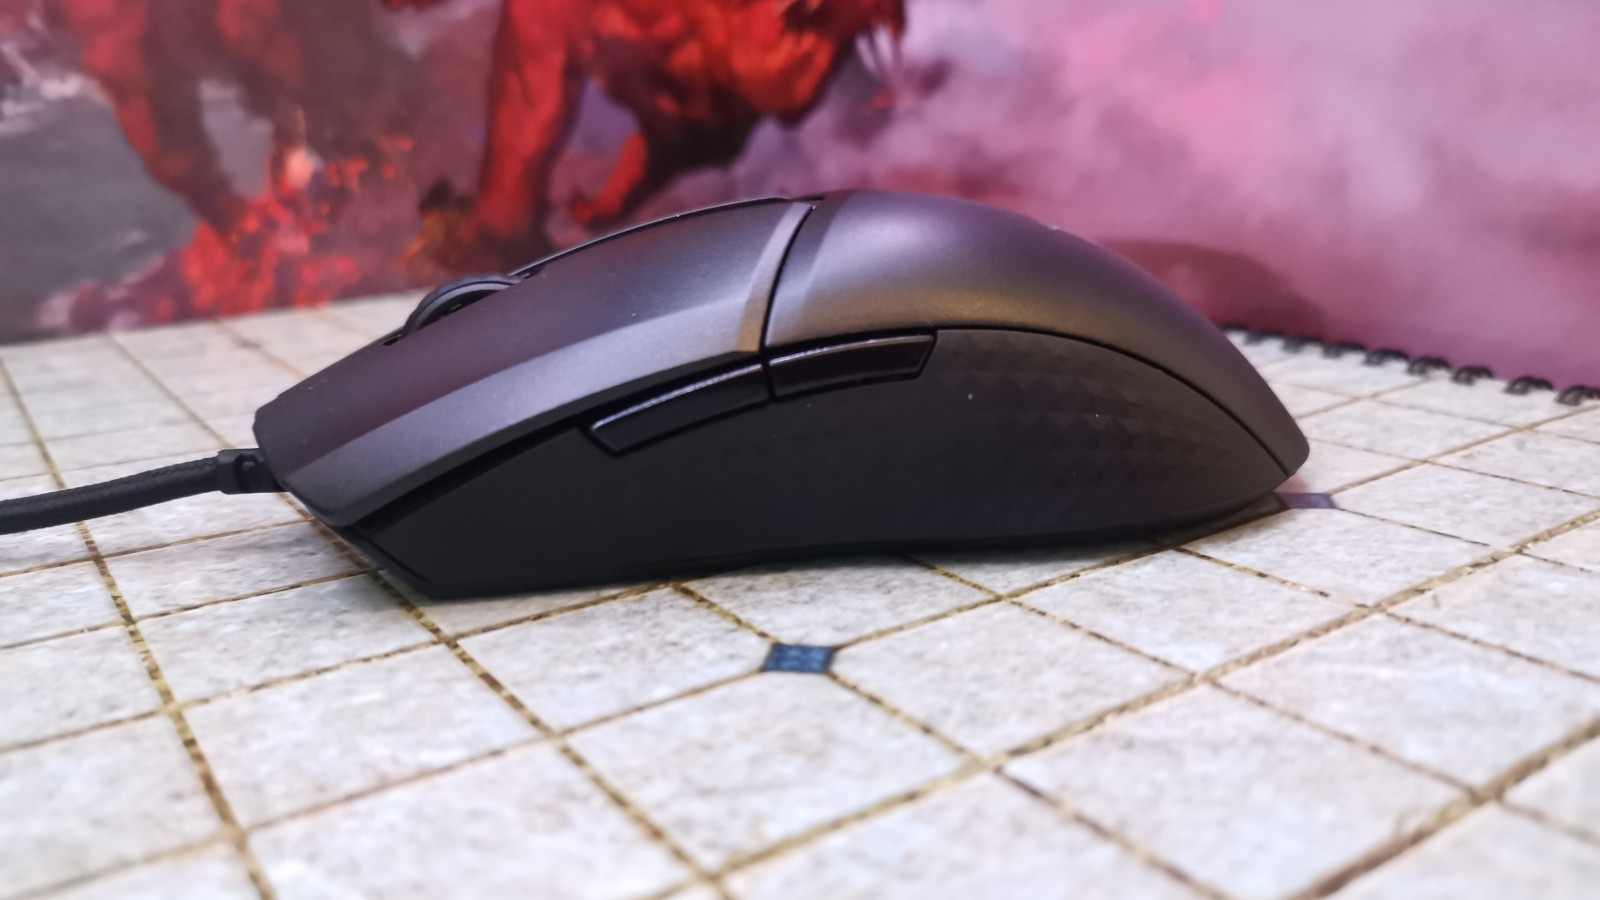 MSI Clutch GM41 gaming mouse